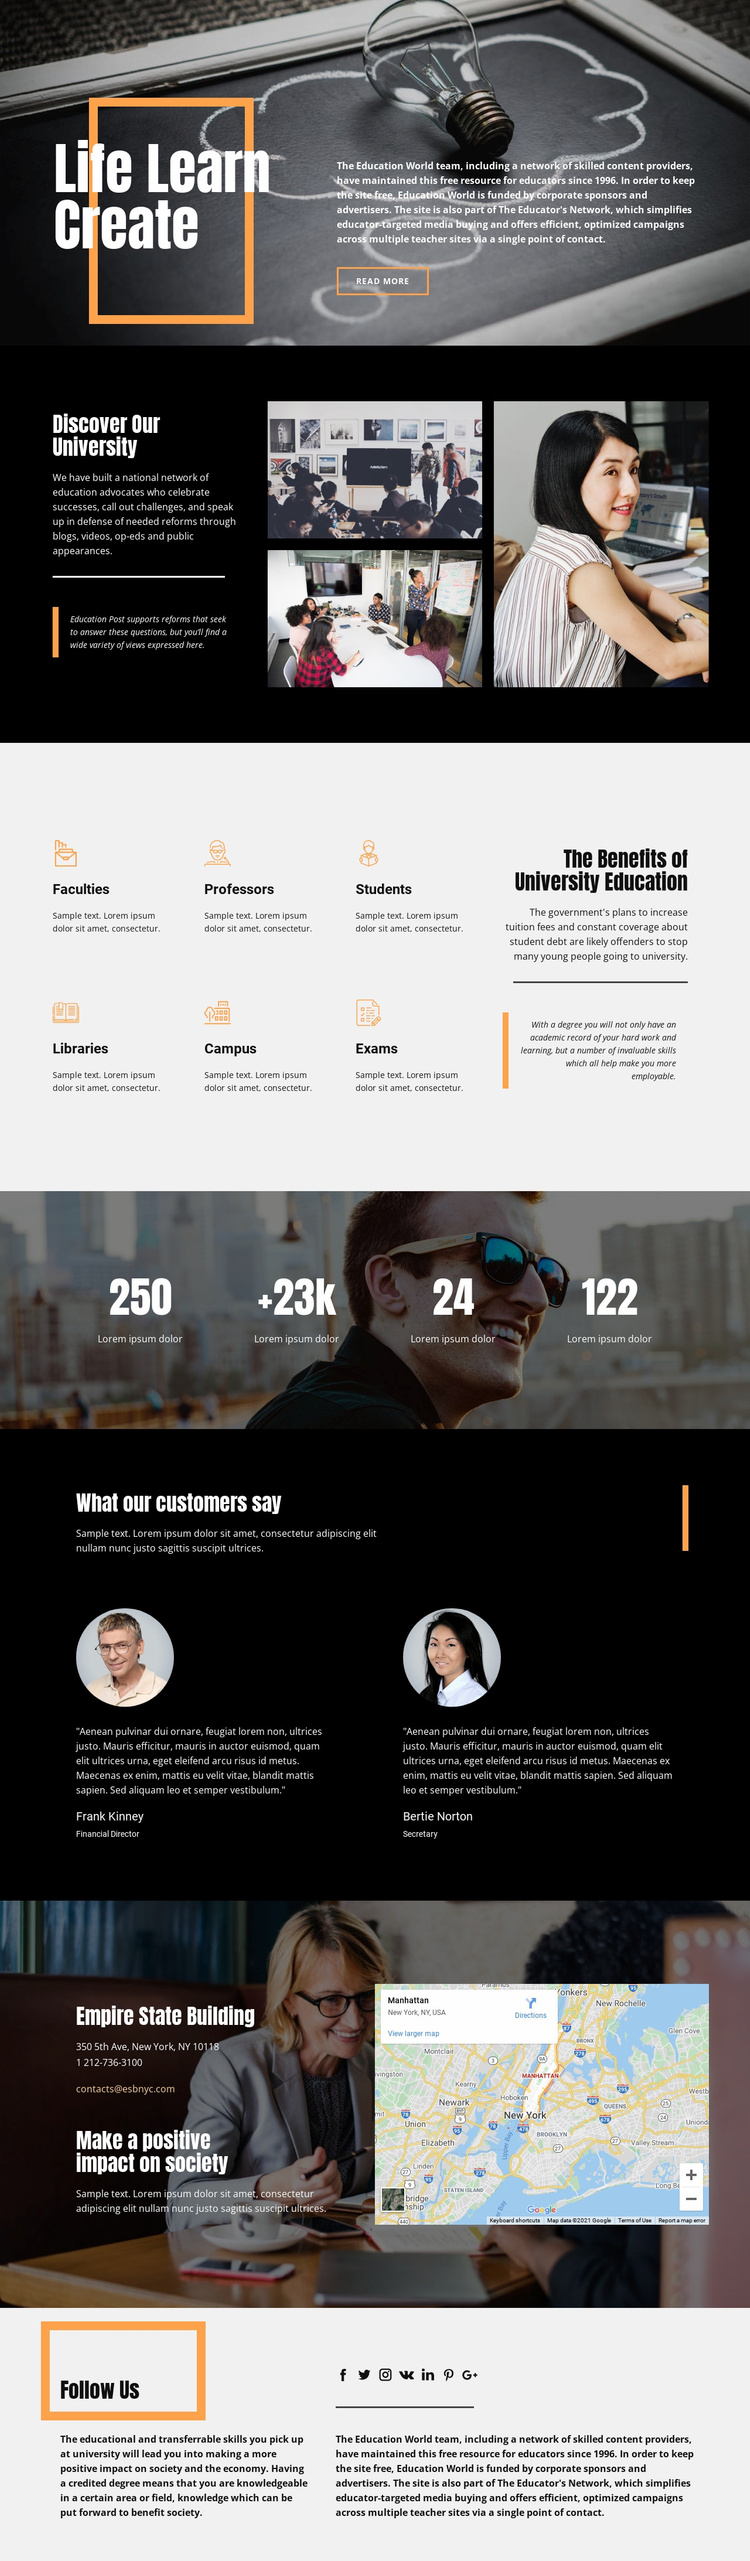 Discover highs of education Website Template